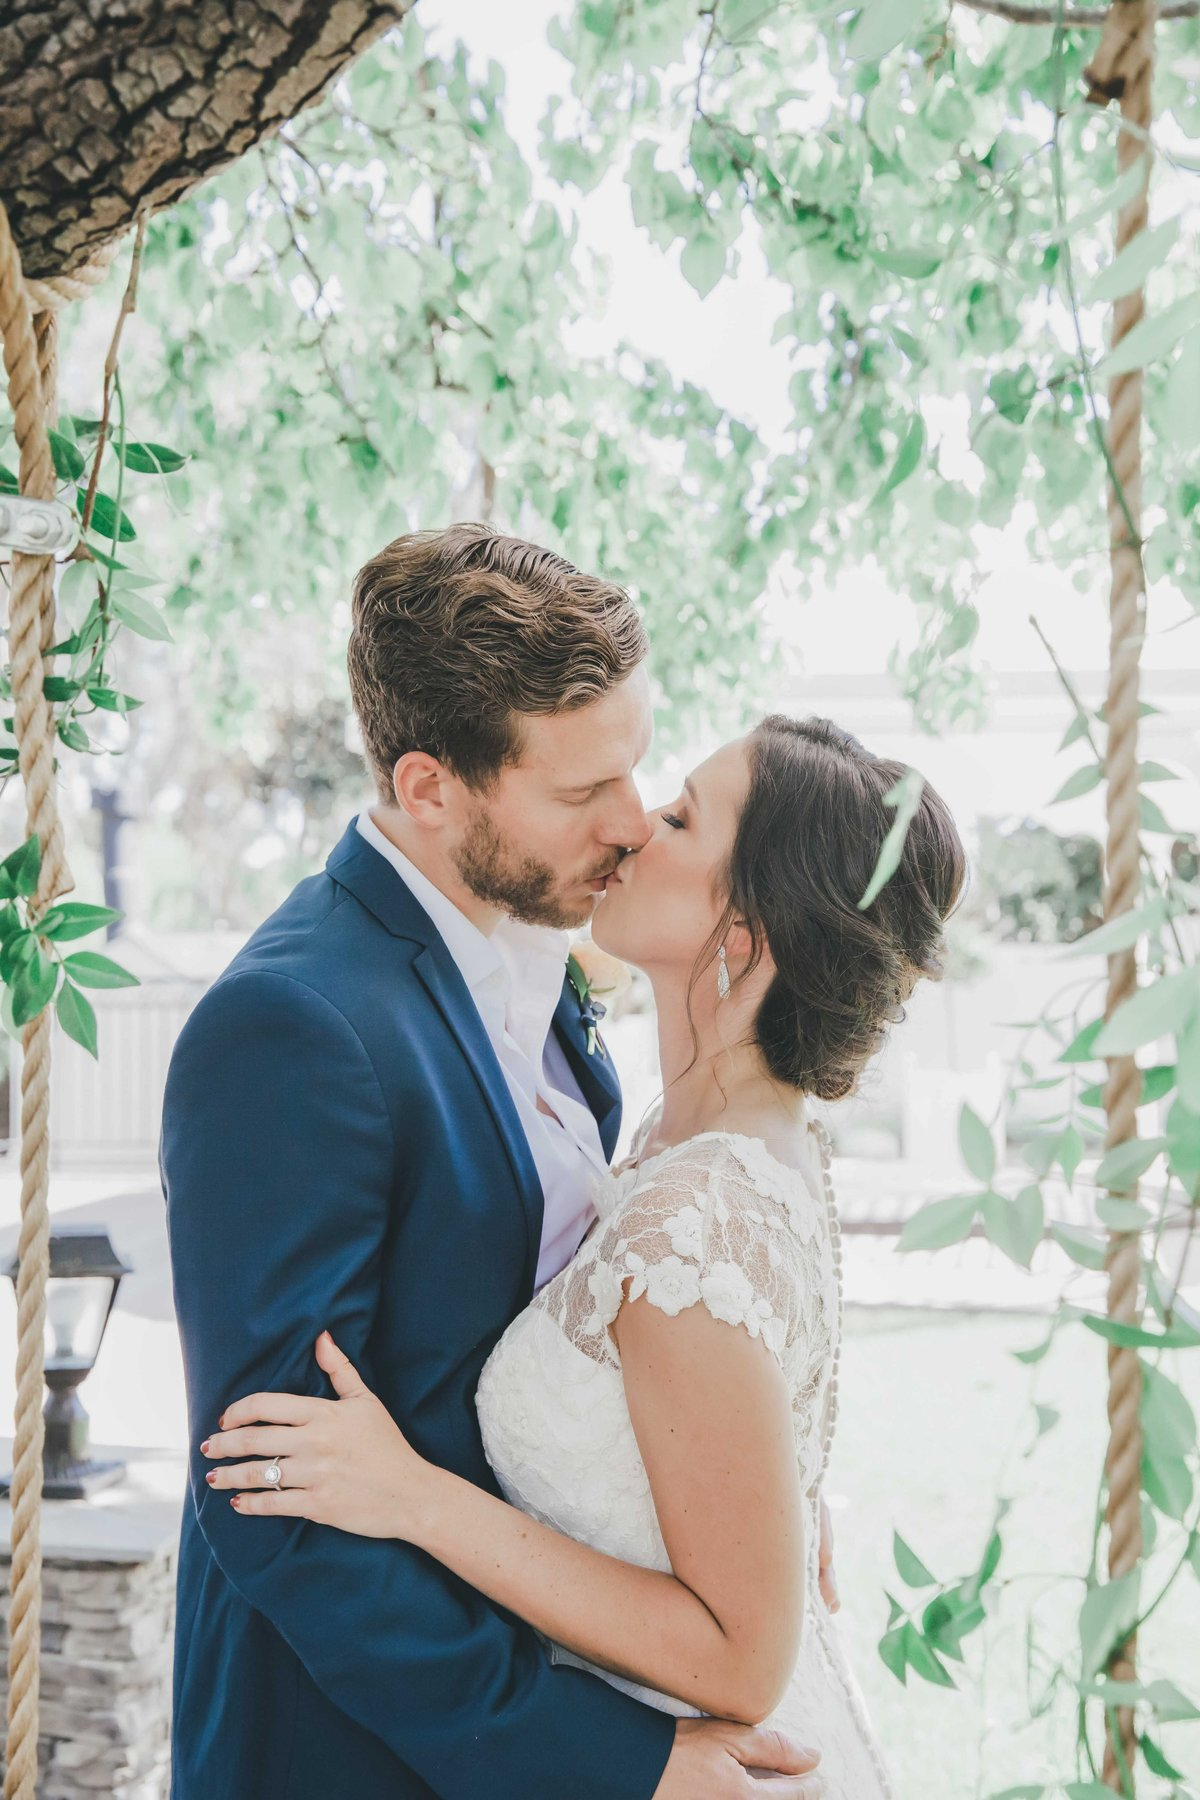 Jessica Jaccarino Photography | Fine Art Engagement & Wedding Photographer